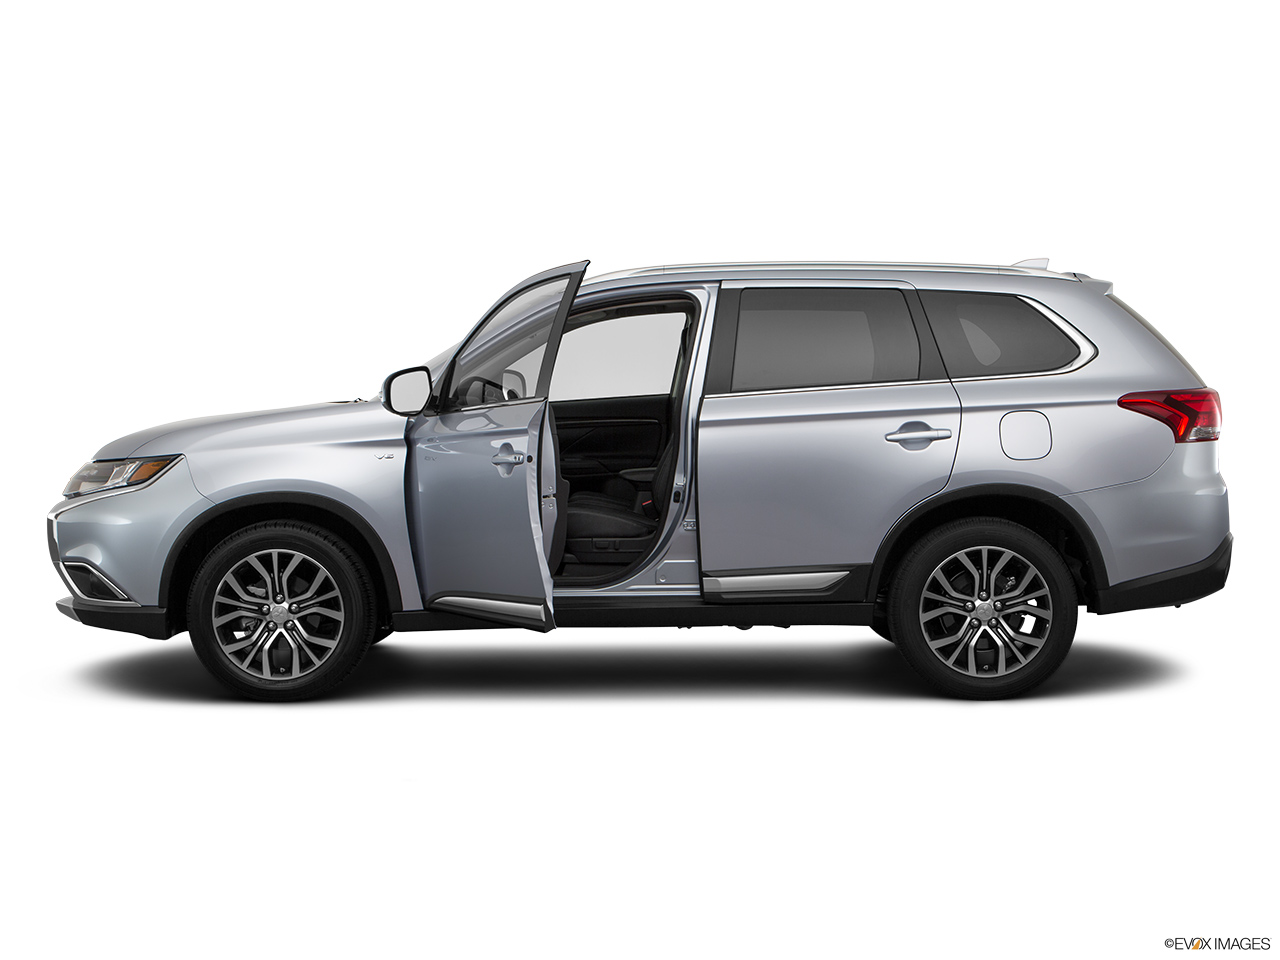 mitsubishi outlander 2017 3 0l gls 7 seater in uae new. Black Bedroom Furniture Sets. Home Design Ideas